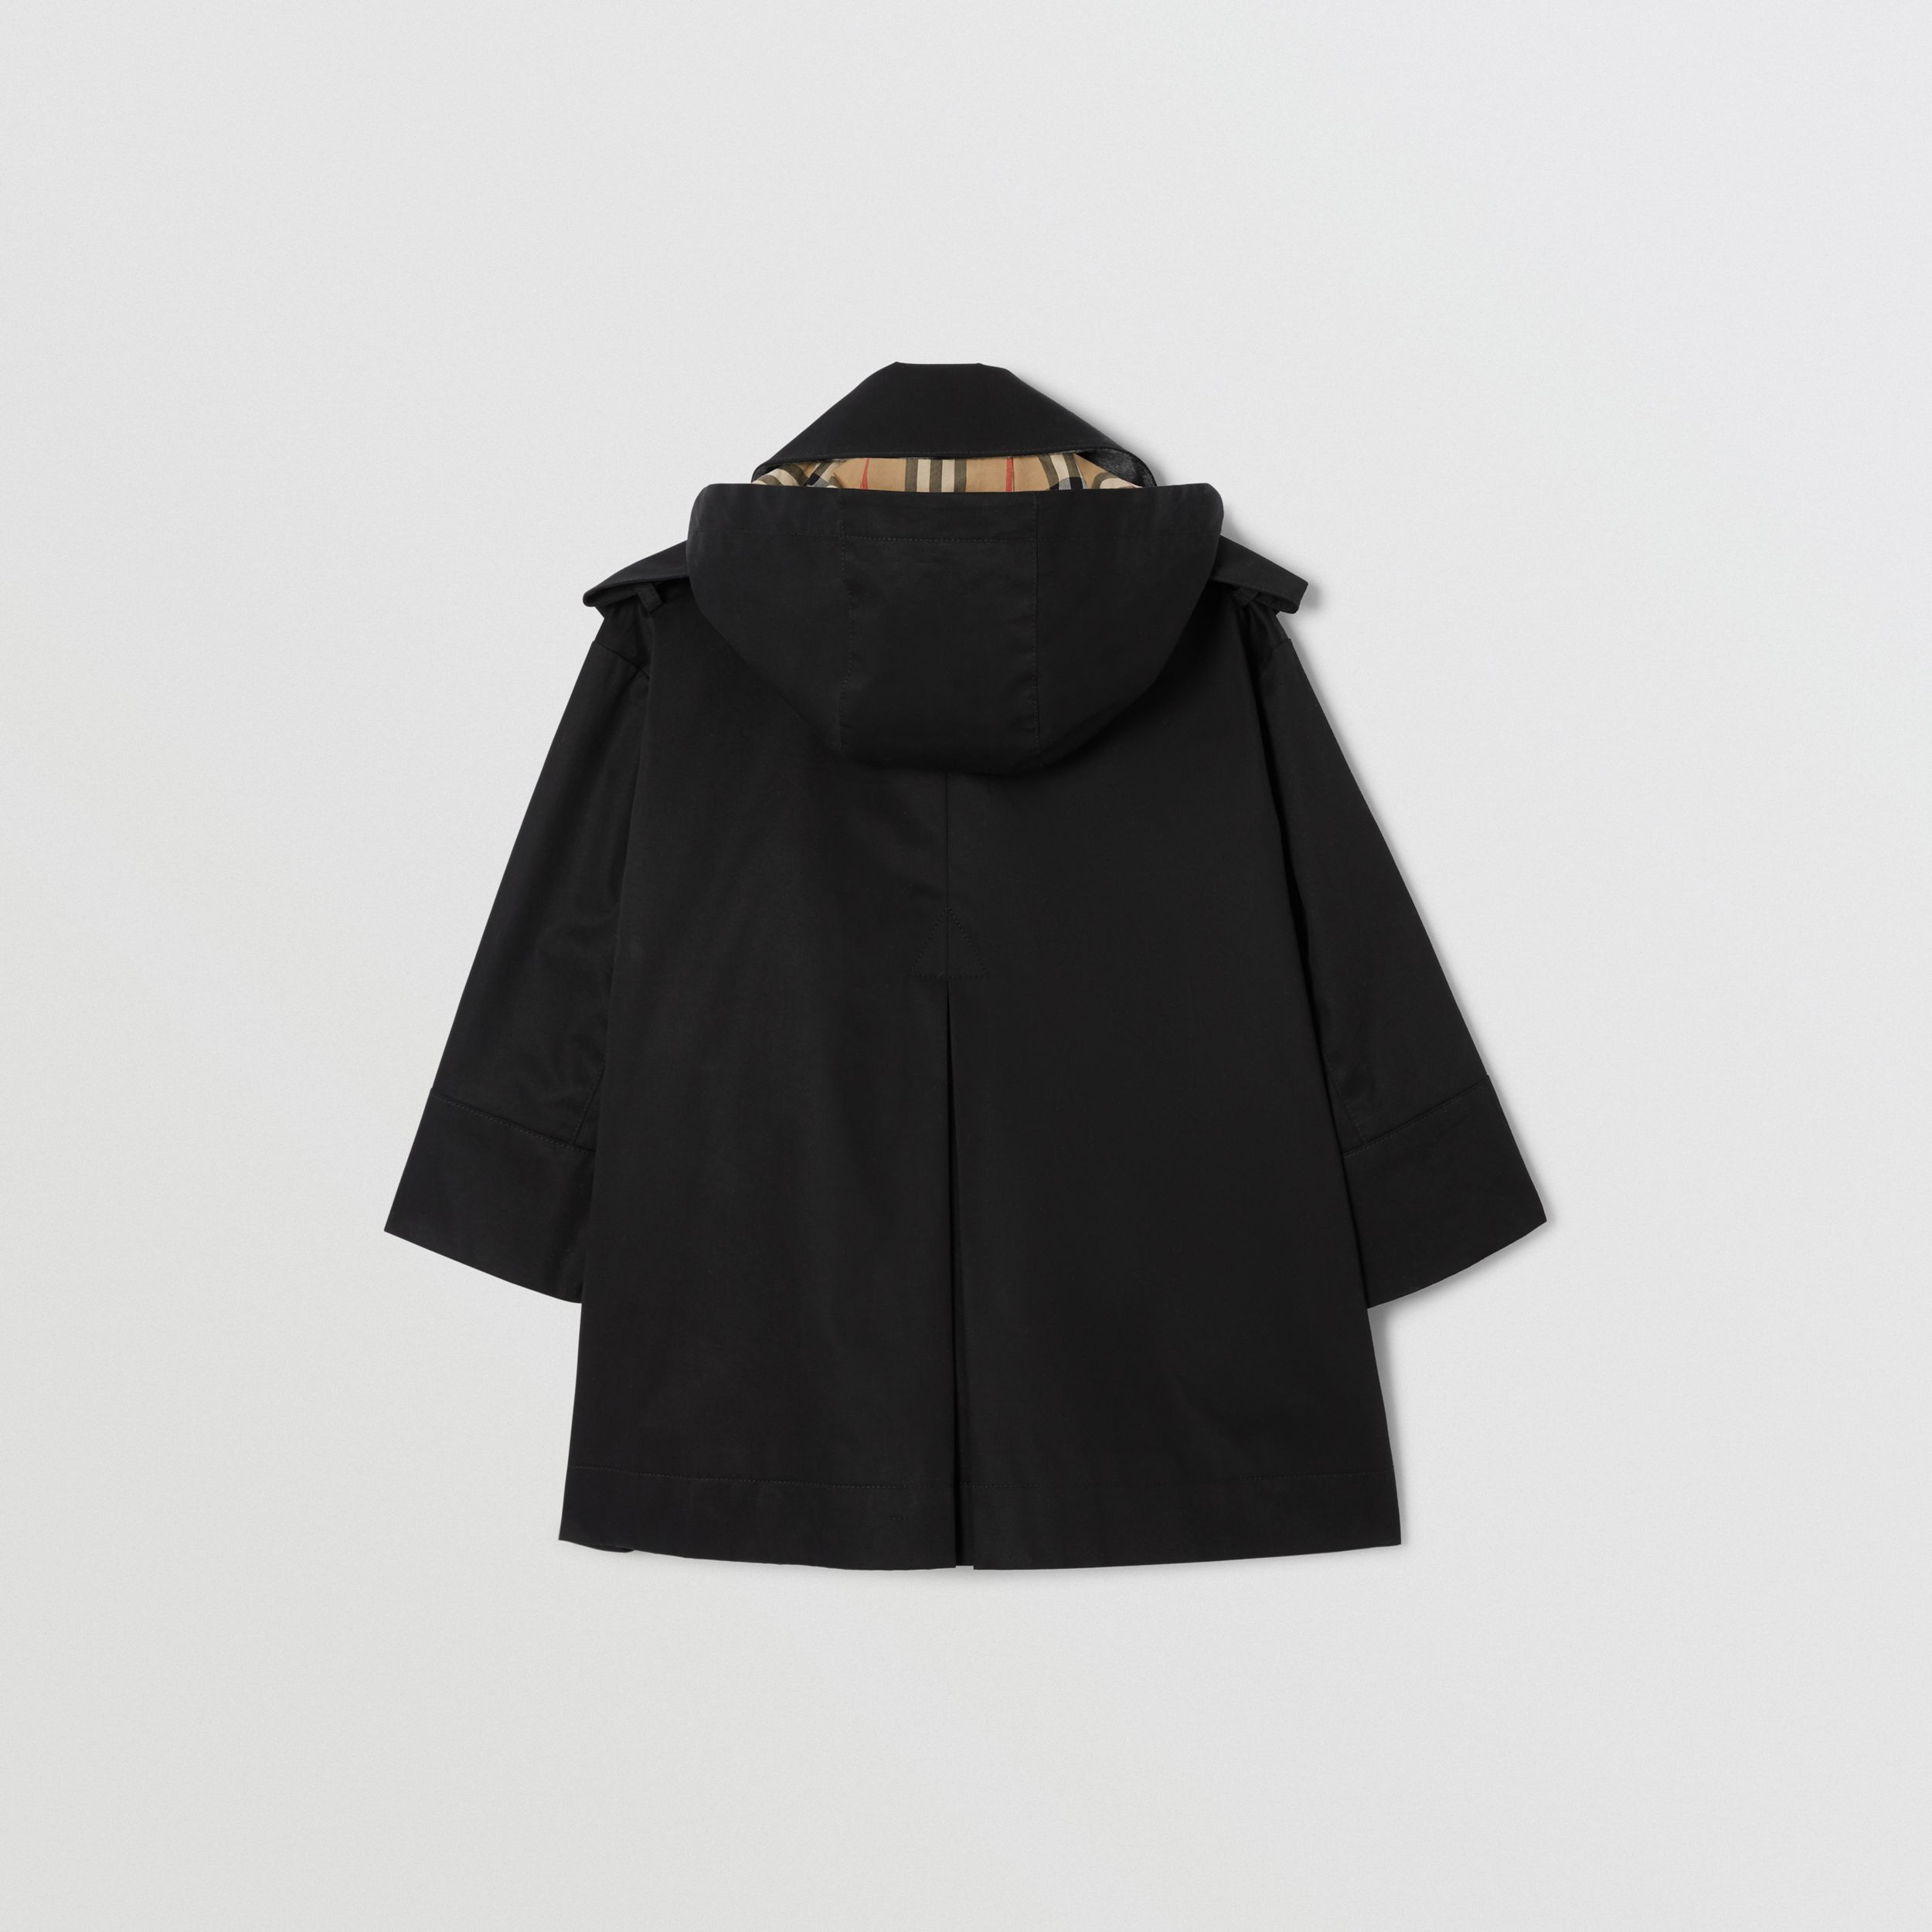 Cotton Twill Hooded Trench Coat in Black | Burberry - 4